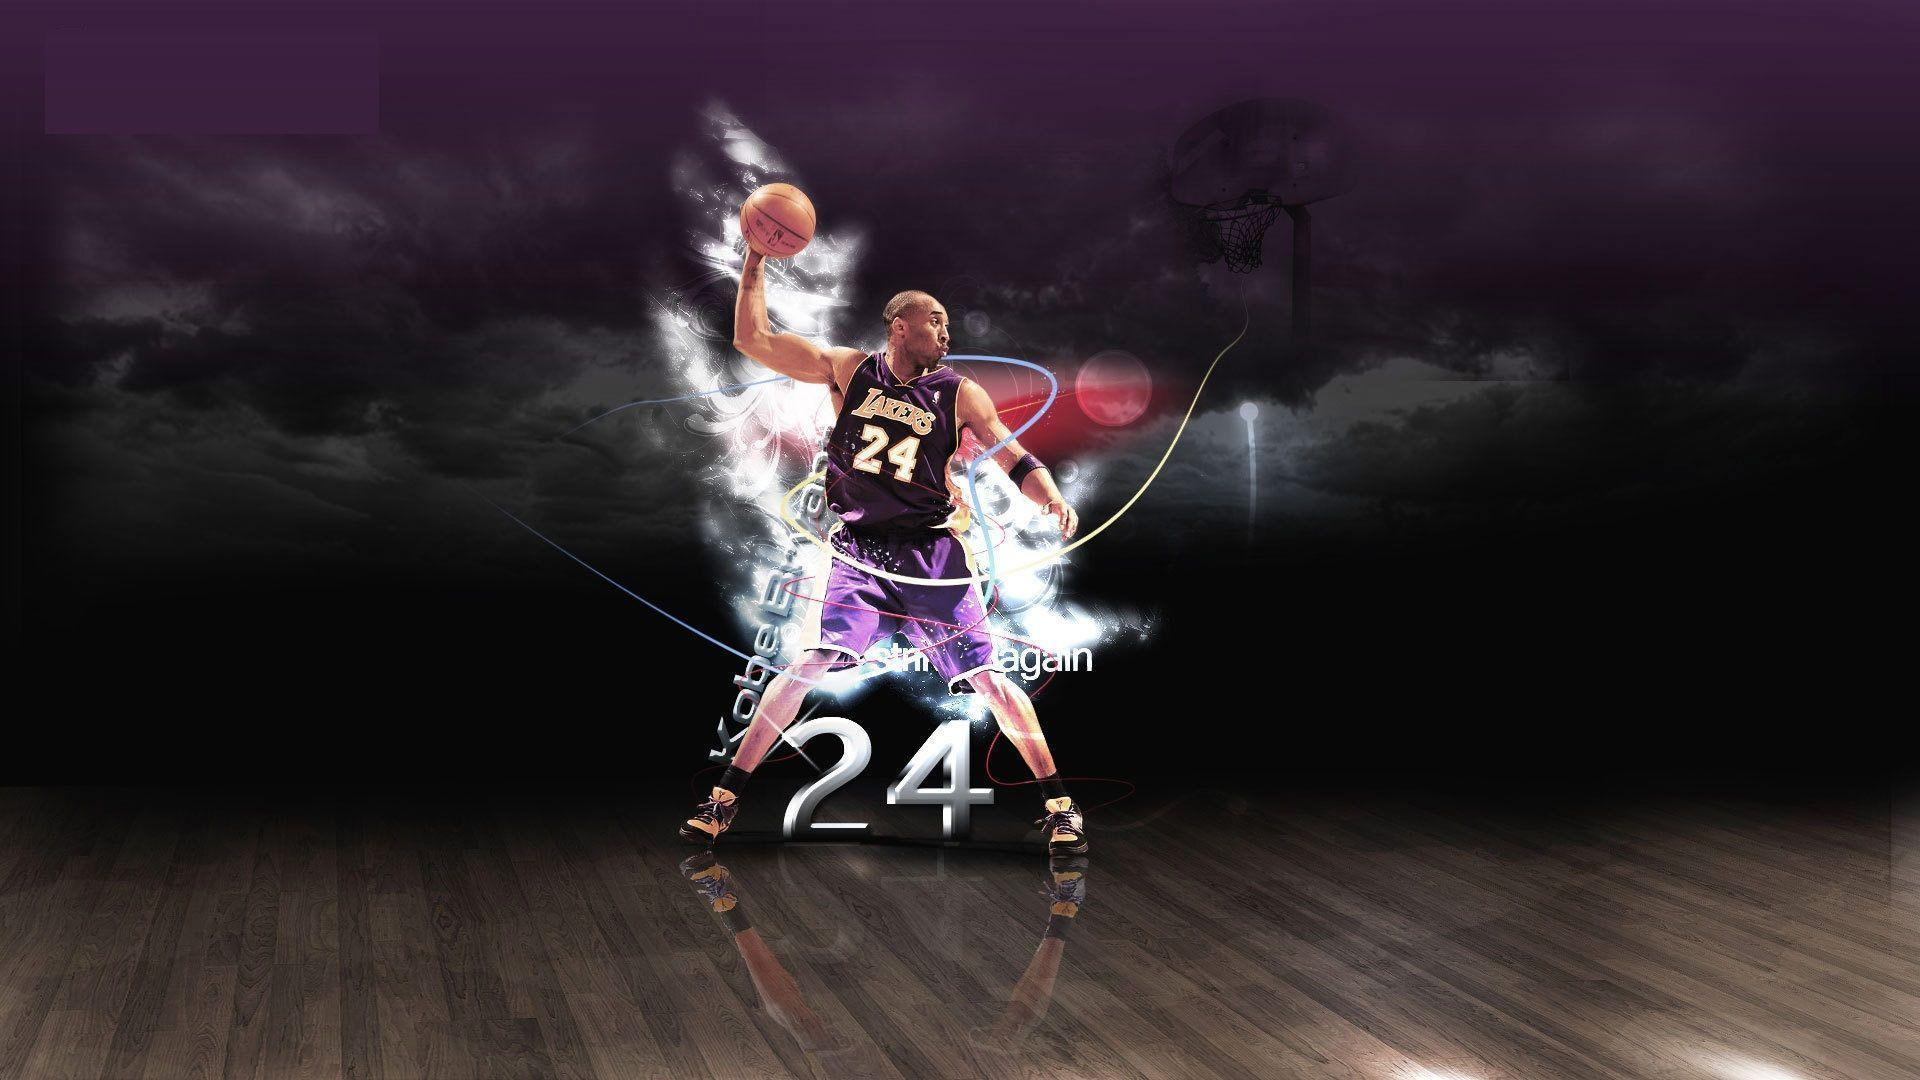 kobe bryant wallpaper 2016 - photo #10